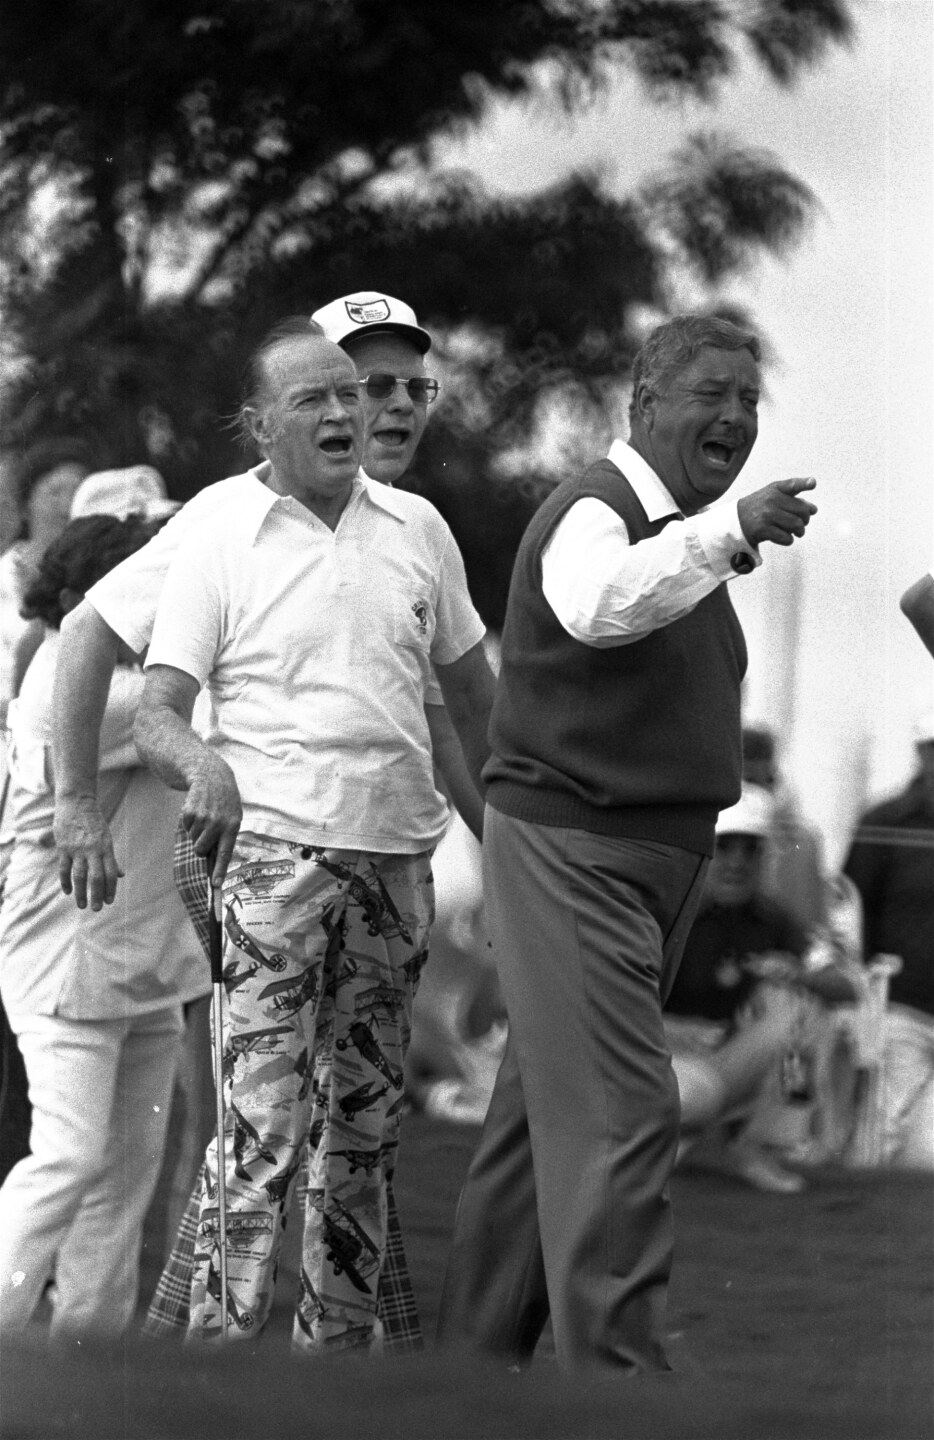 Jackie Gleason, Bob Hope and President Gerald Ford at Inverrary in 1975